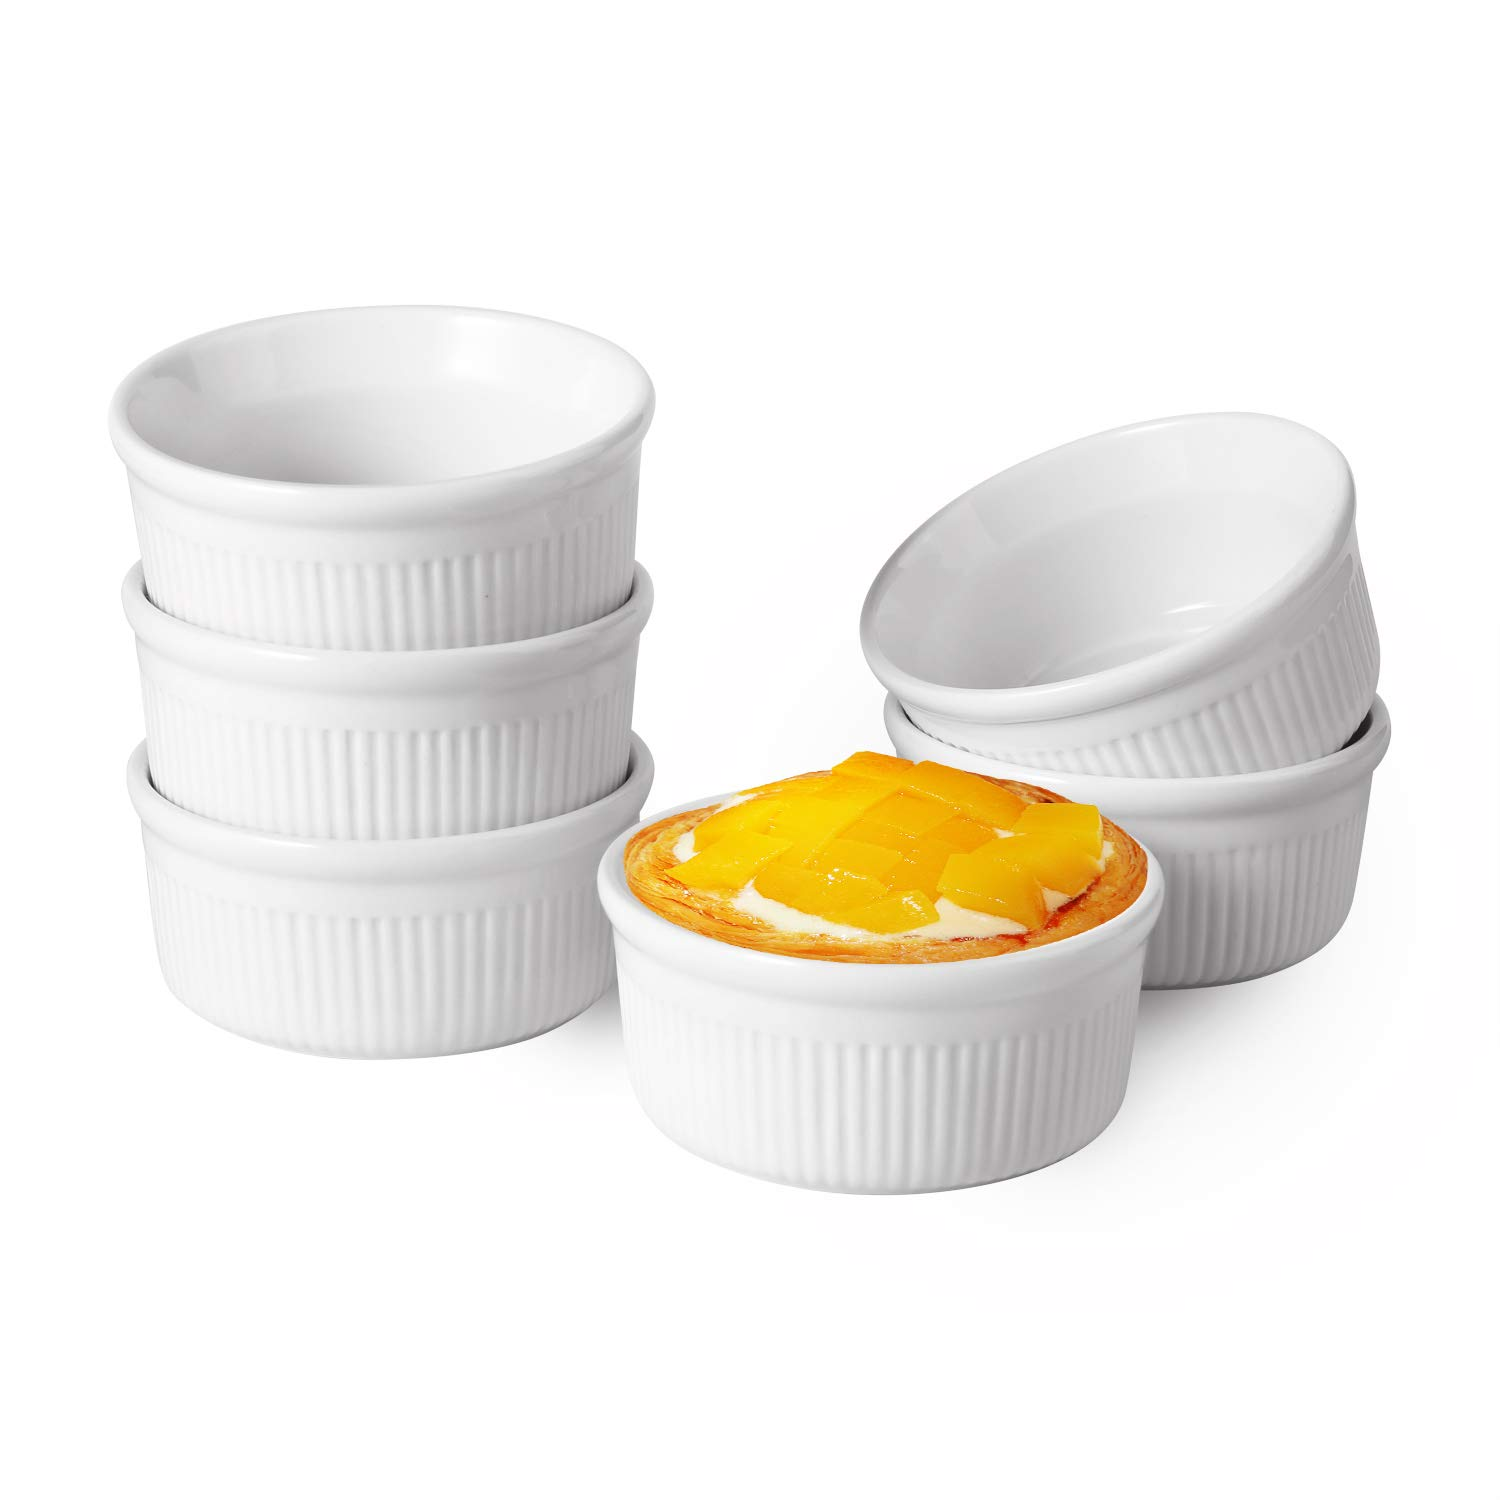 ComSaf White Porcelain Ramekins, 6oz Baking Cups for Souffle, Creme Brulee, Custards, Pudding and Ice Cream - Durable Set of 6 by ComSaf